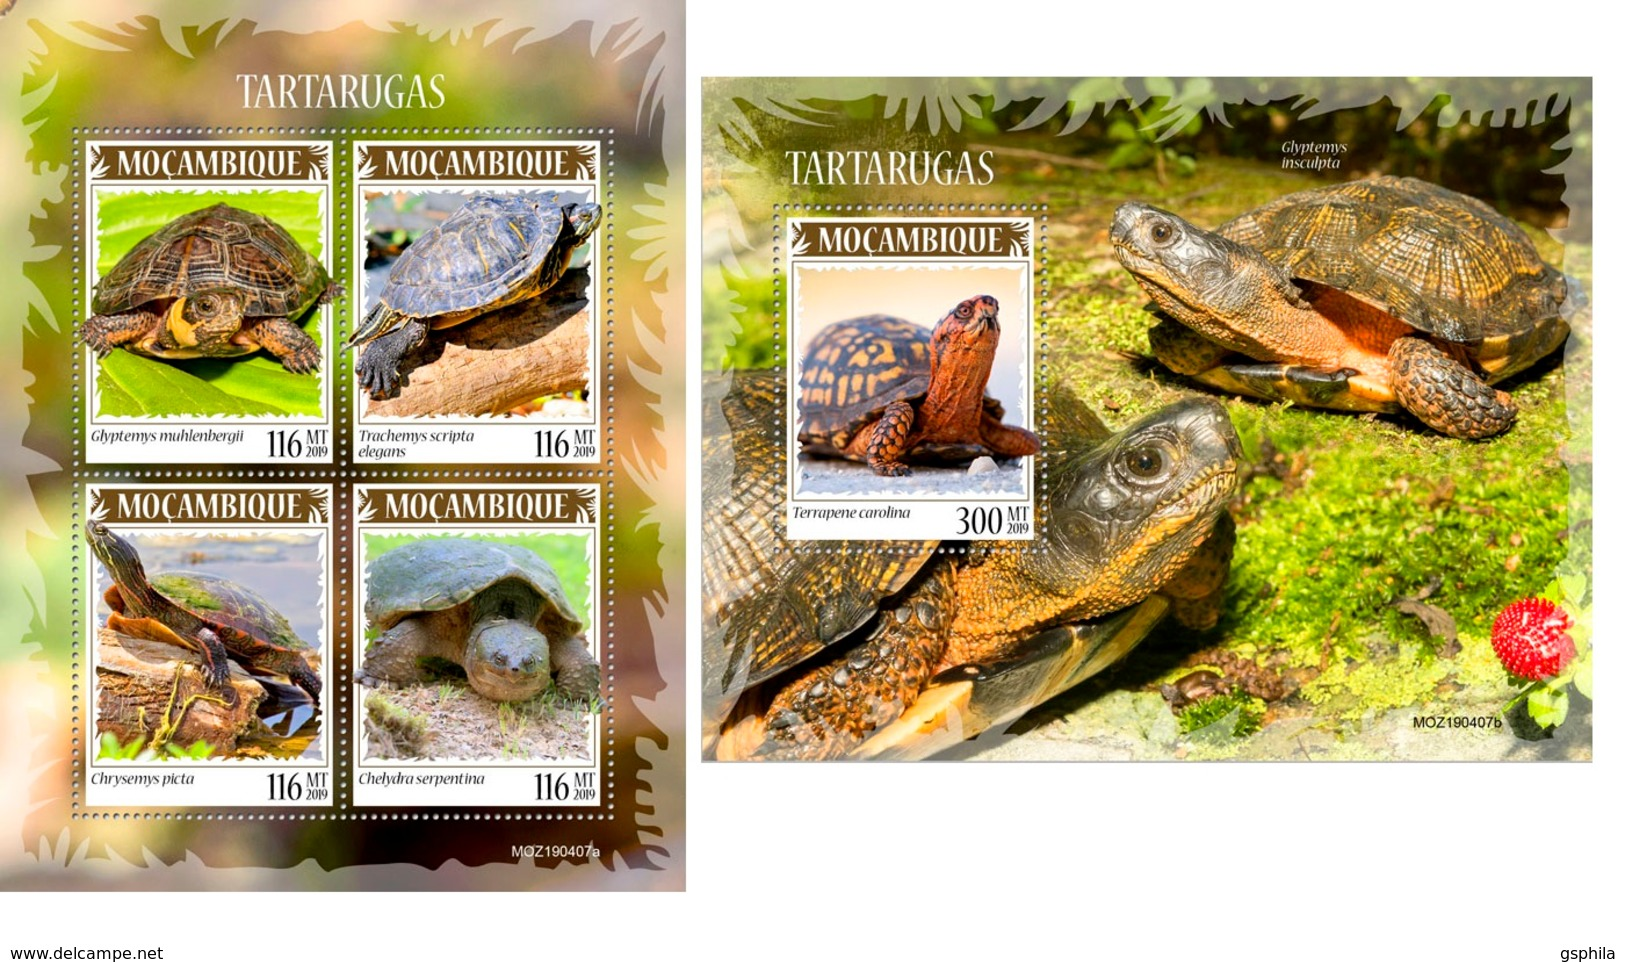 Mozambique 2019 Turtles Fauna Turtle MS+S/S MOZ190407 - Sellos